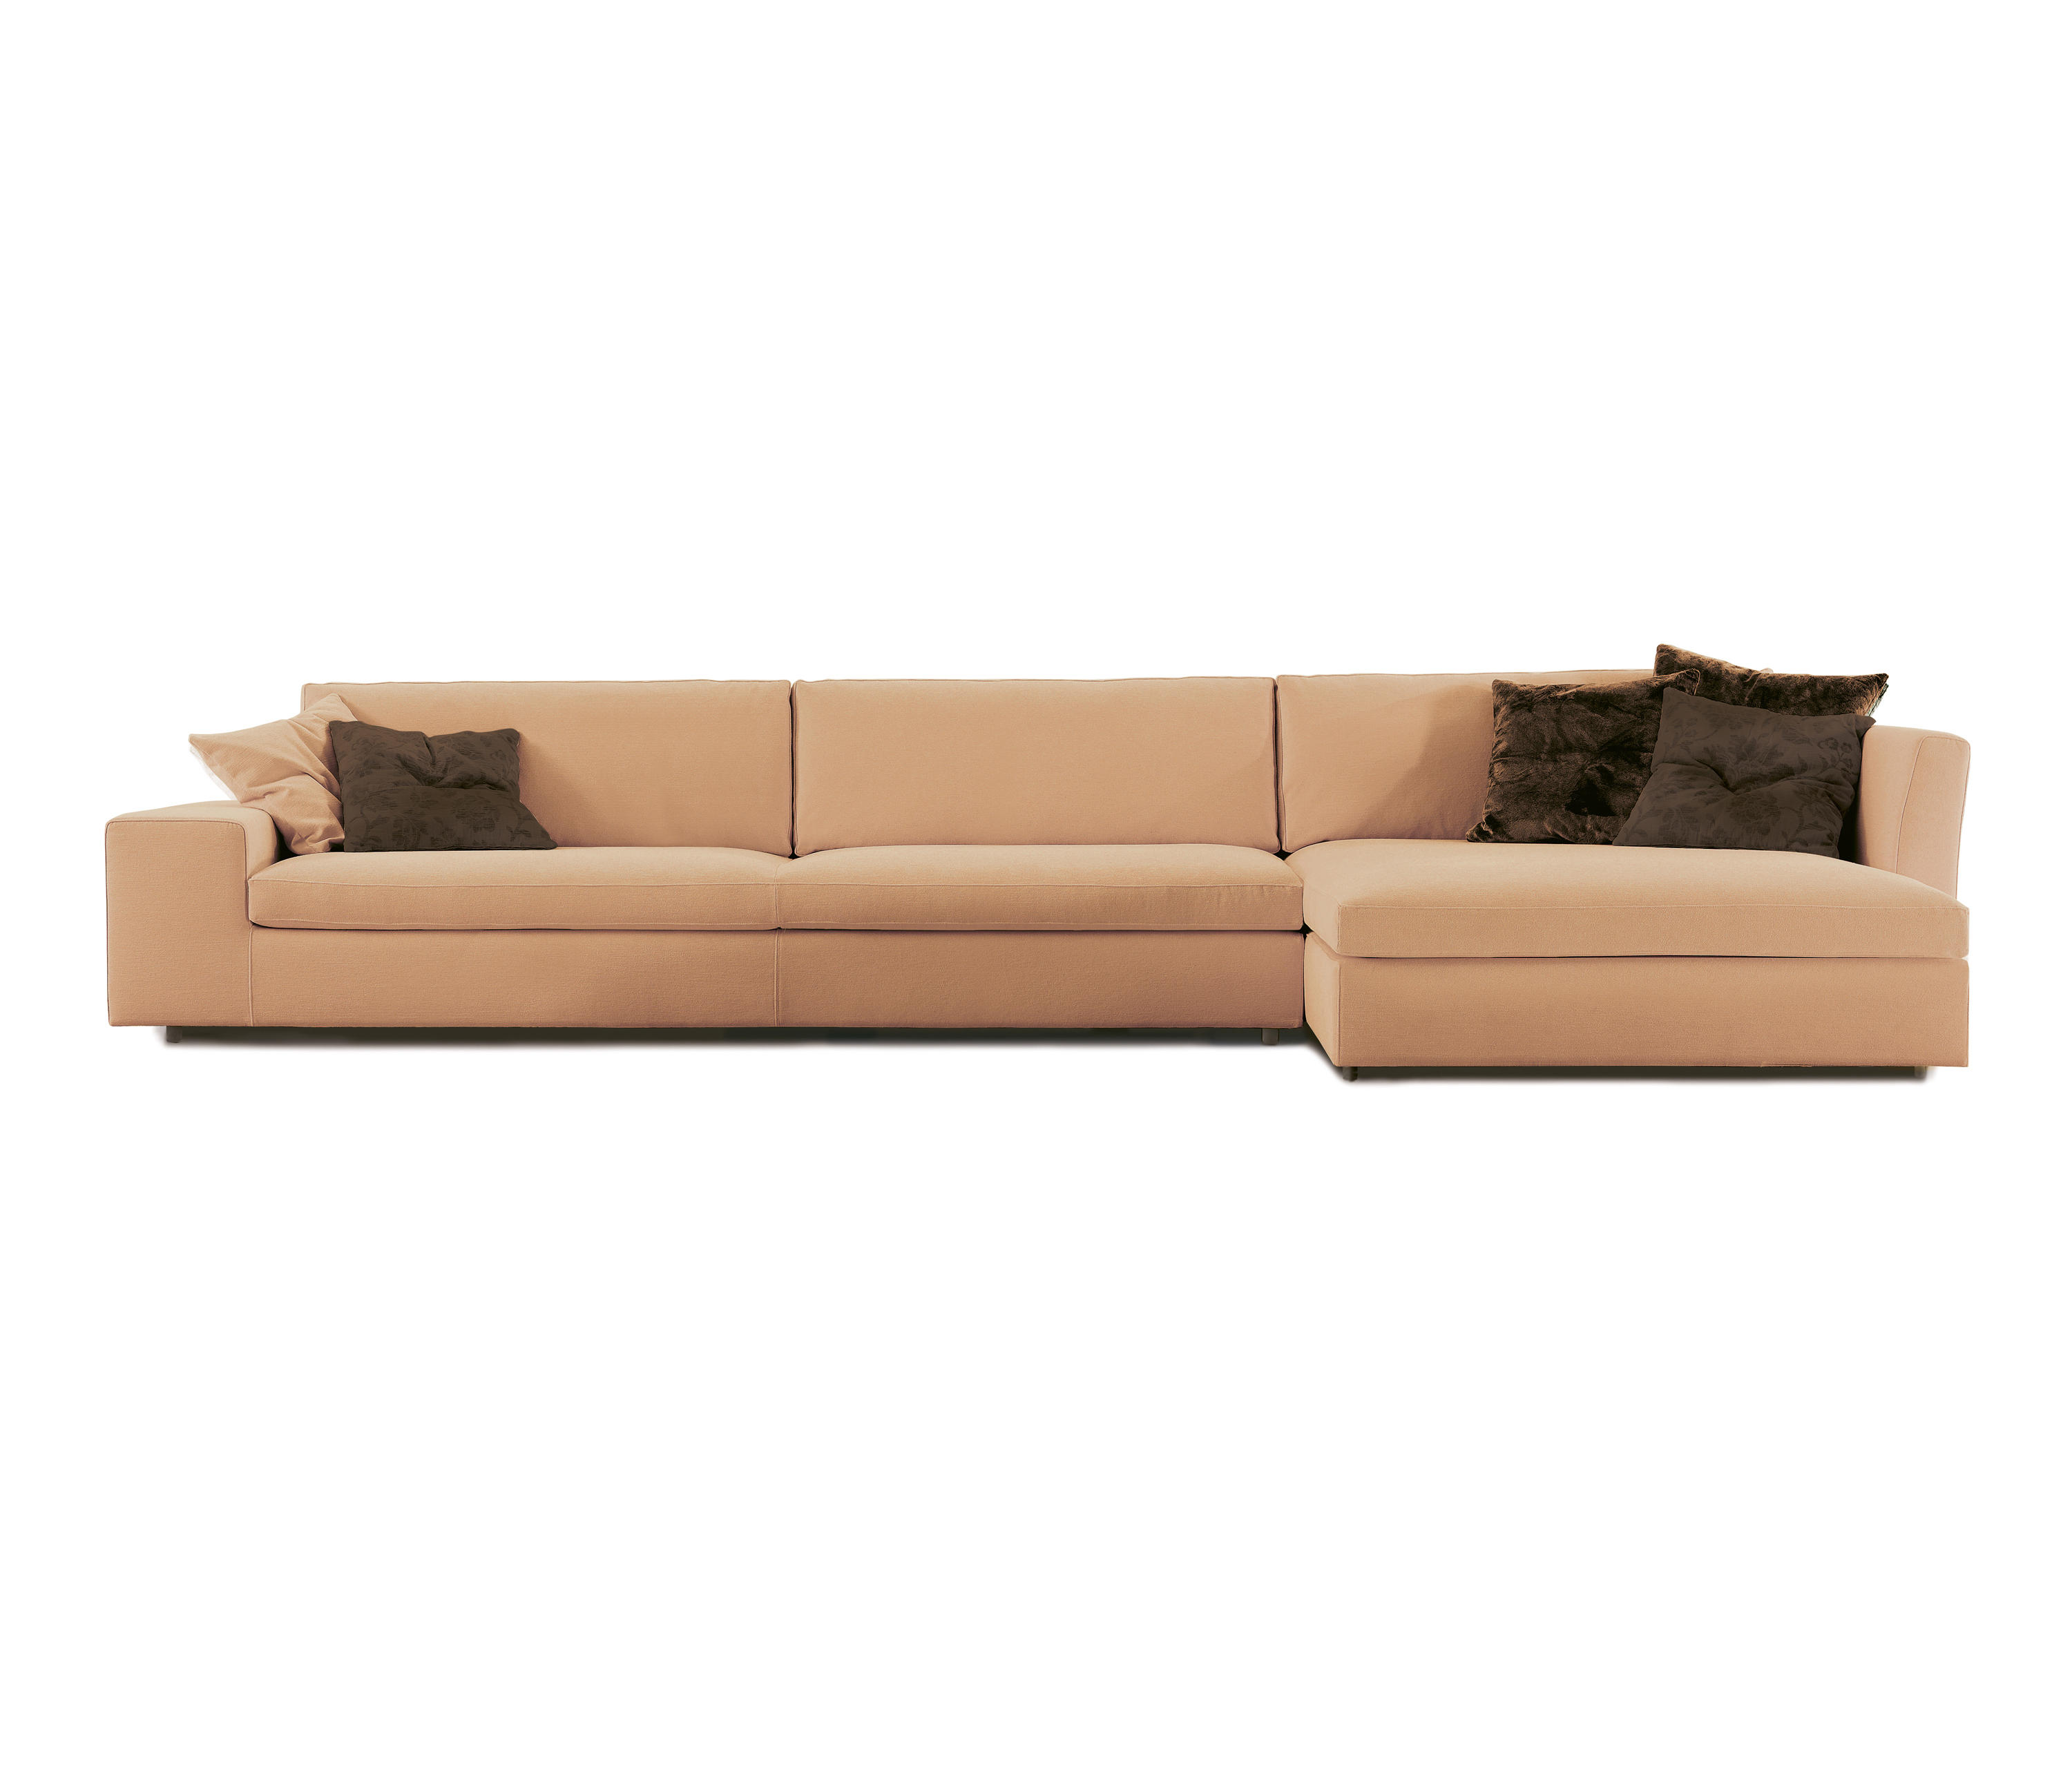 AIR - Sofas from Sancal | Architonic